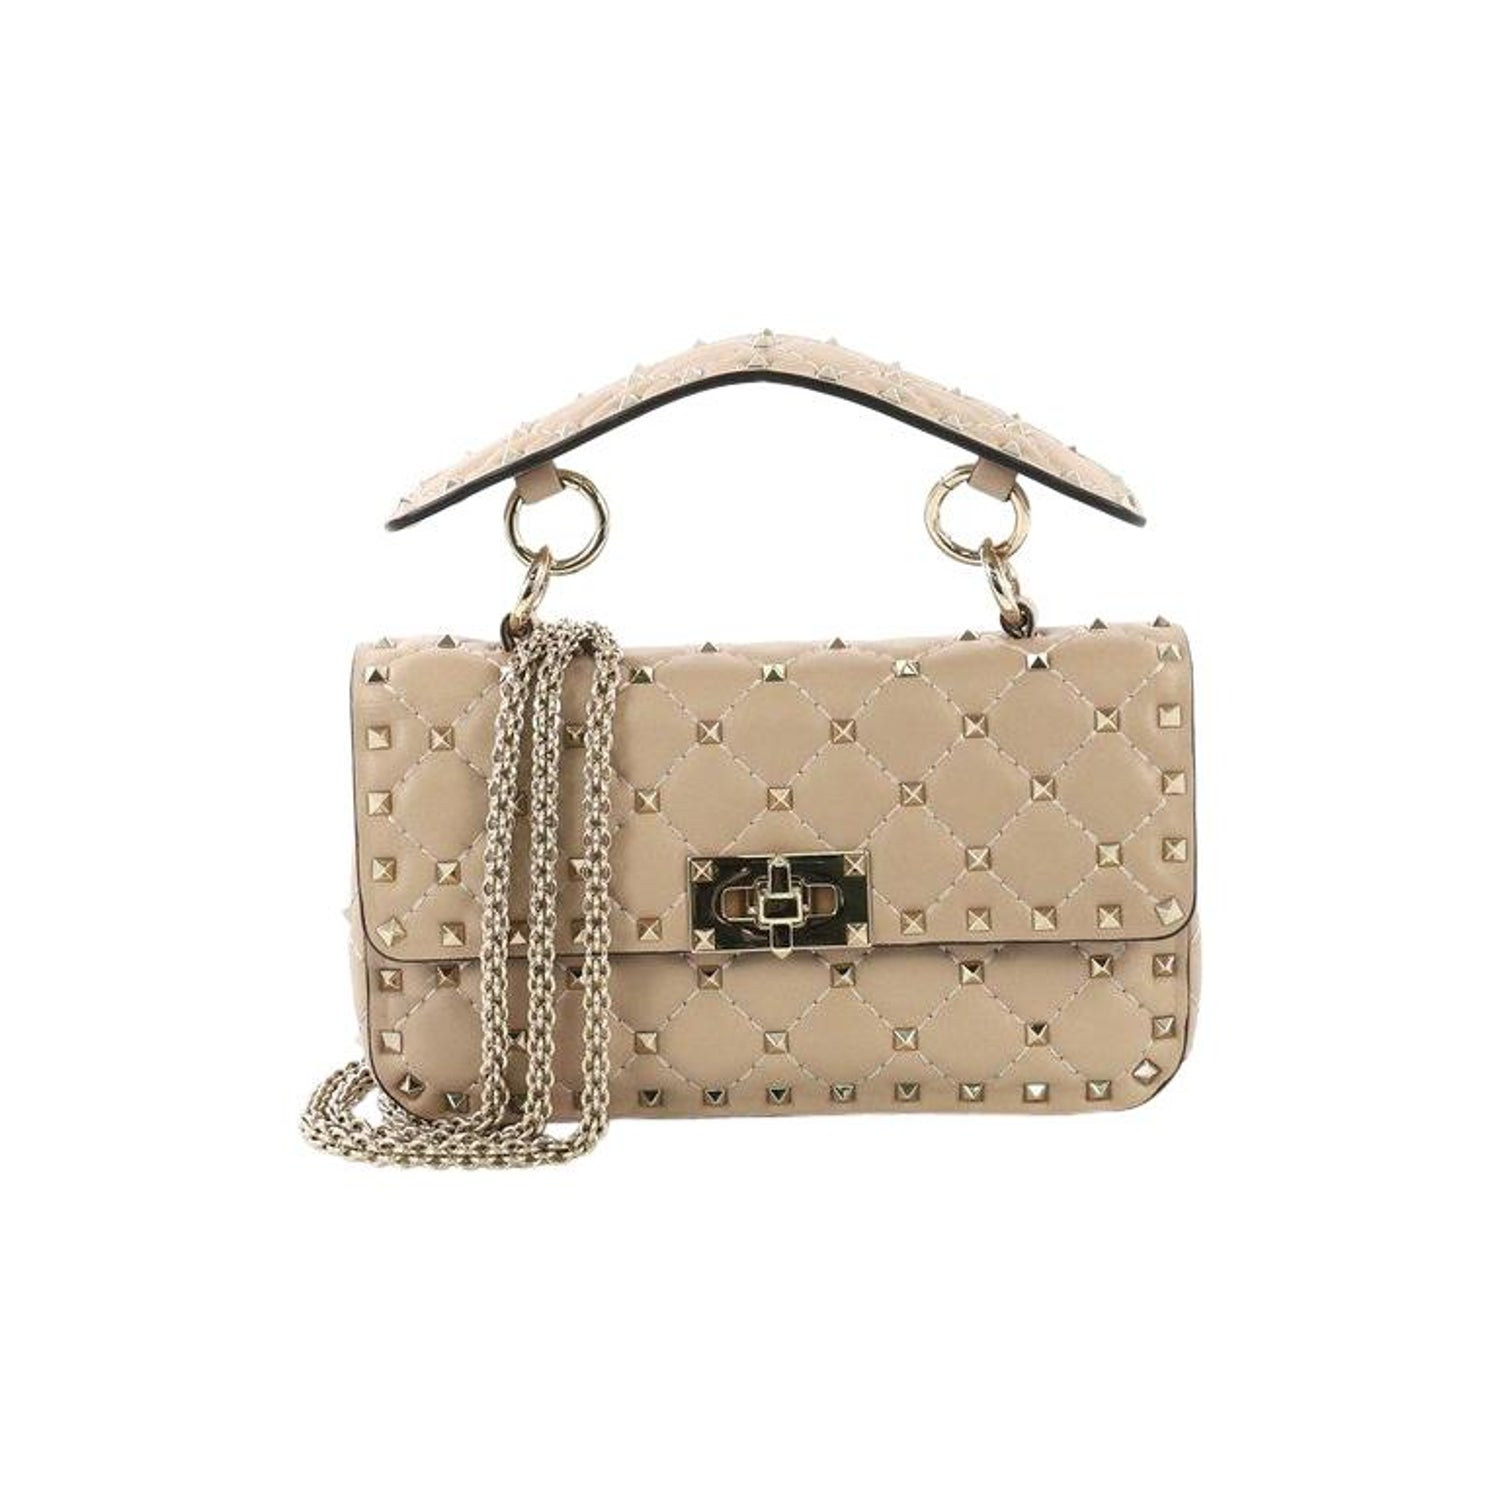 8a844f82616 Valentino Rockstud Spike Flap Bag Quilted Leather Small at 1stdibs